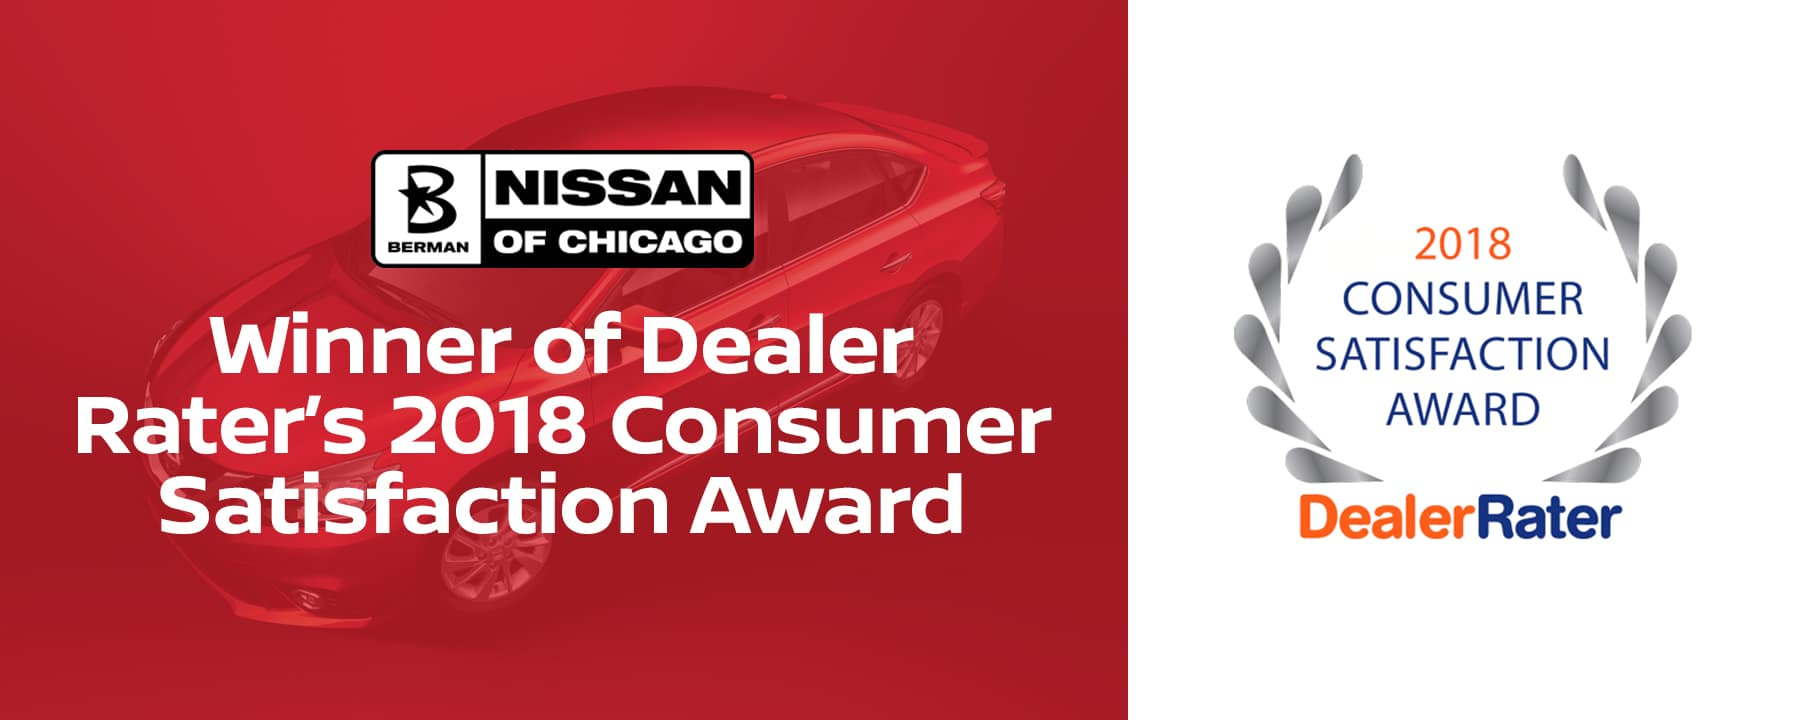 Berman Nissan Of Chicago New Used Car Dealer In Nv200 Fuse Box Location Wins Dealerraters 2018 Consumer Satisfaction Award